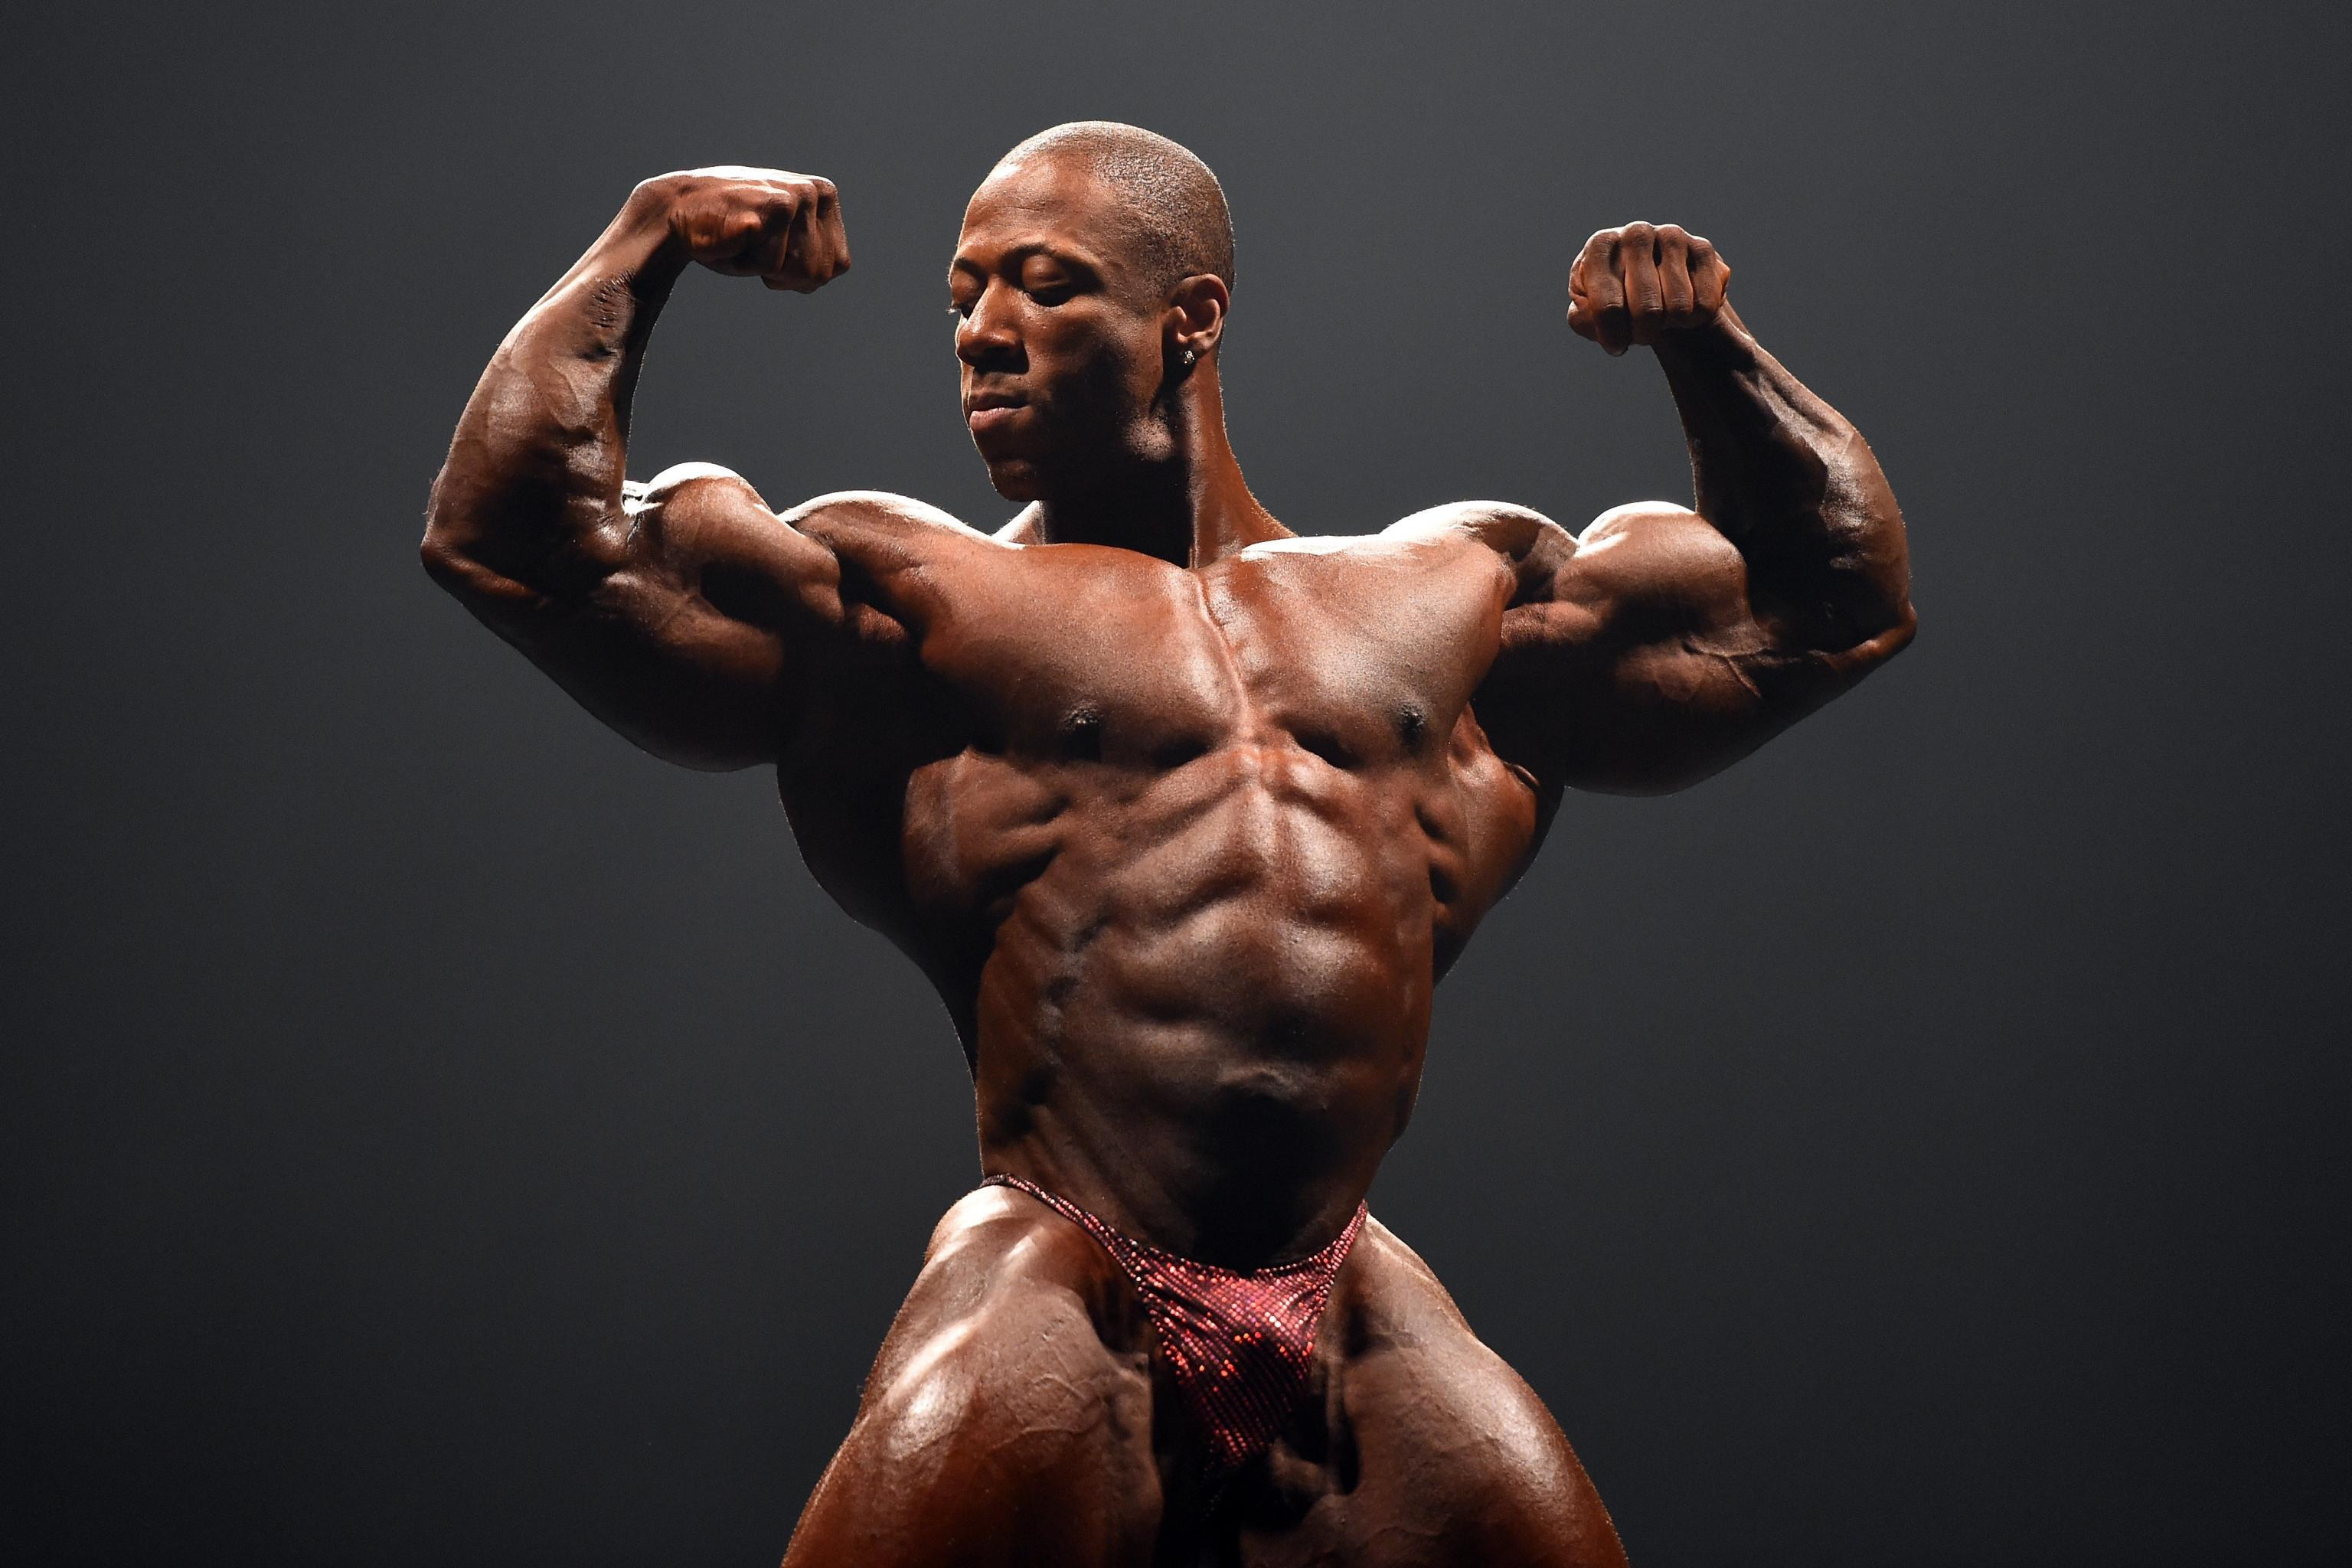 Mr  Olympia 2018 Results: Prize Money Payouts for Winner and